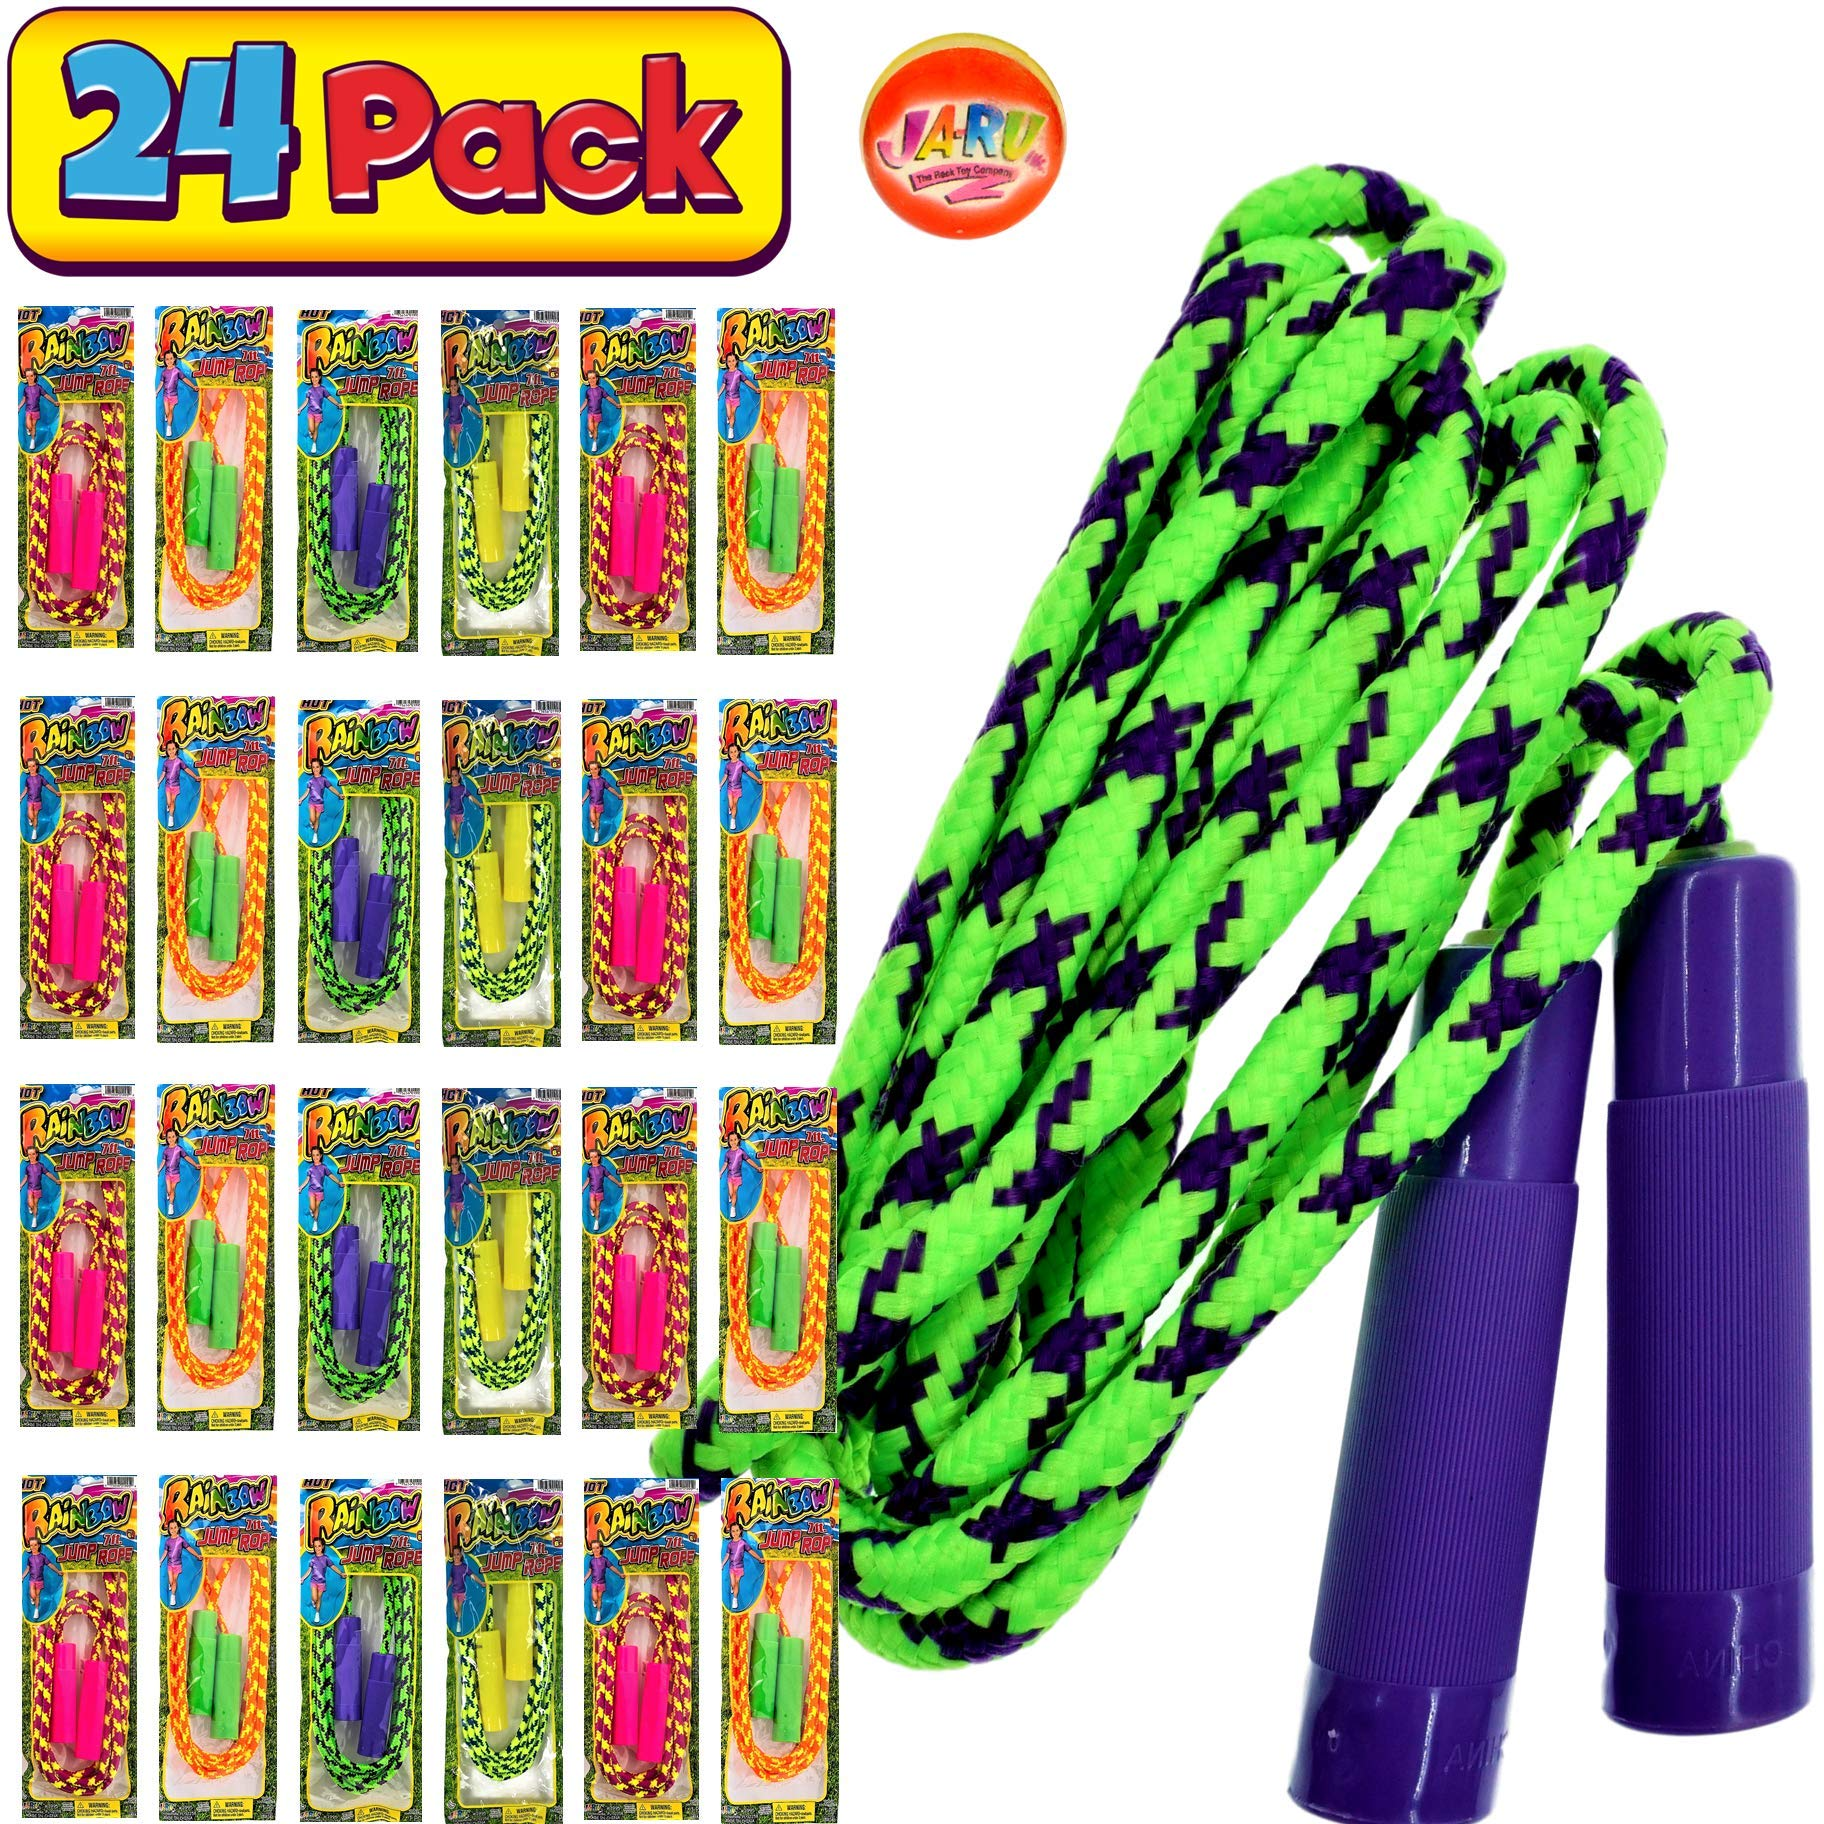 JA-RU Kids Jump Rope 7ft (Pack of 24 Jump Ropes in Bulk) Assorted Colors Jump Ropes for Boys Girls Kids and Adults Great Party Favors Toy Kids Outdoor Activities. Plus 1 Bouncy Ball 1995-24p